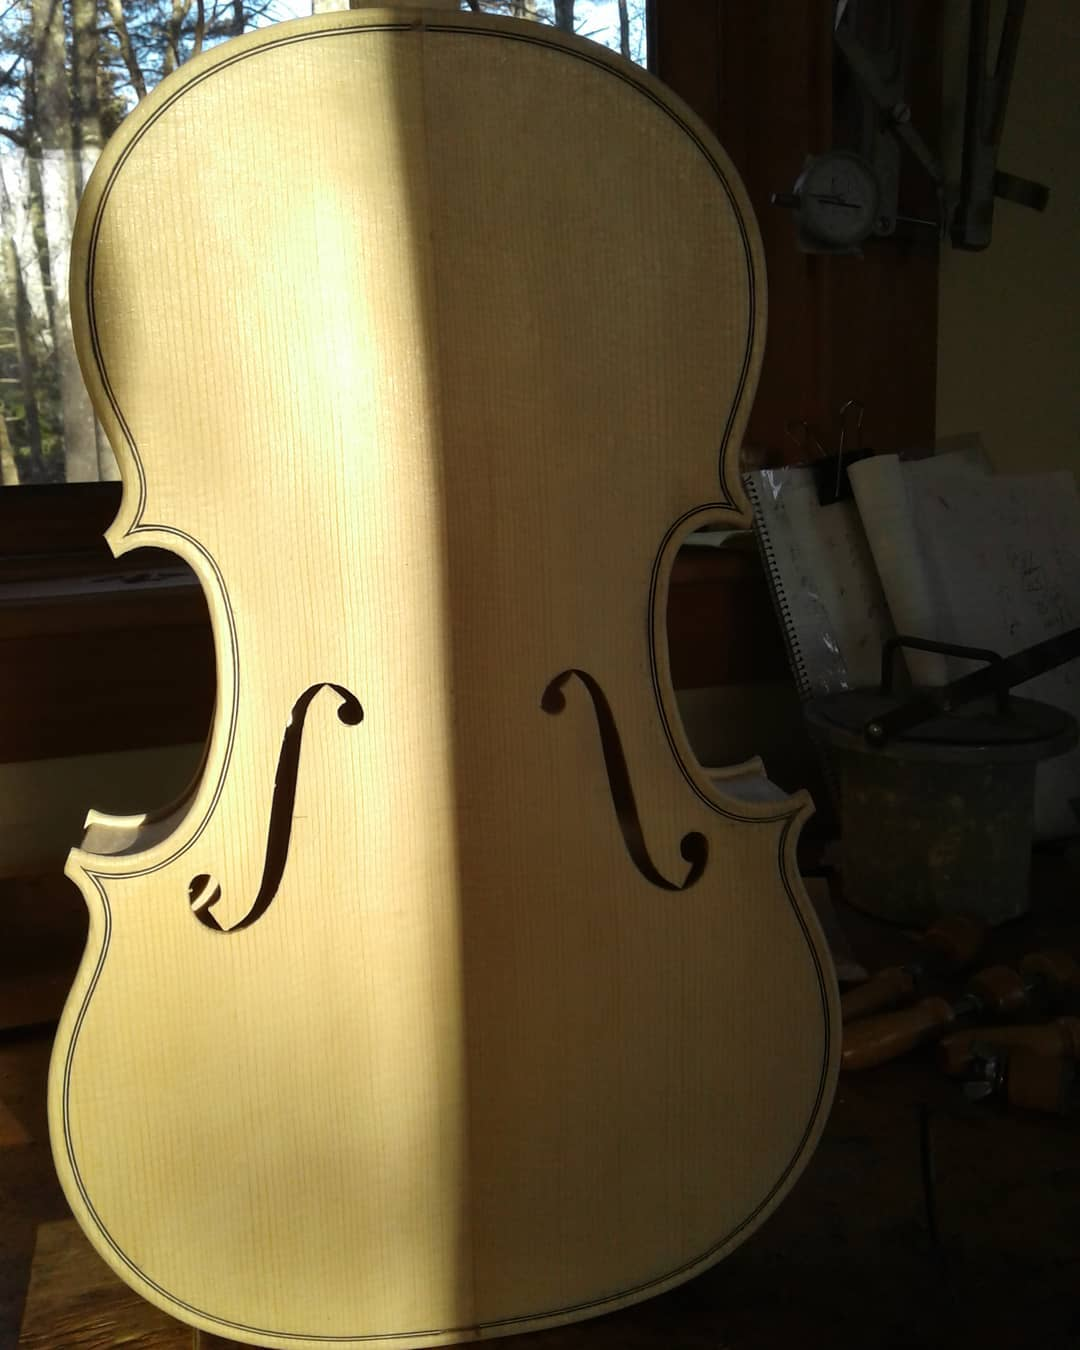 Using natural light.com # viola